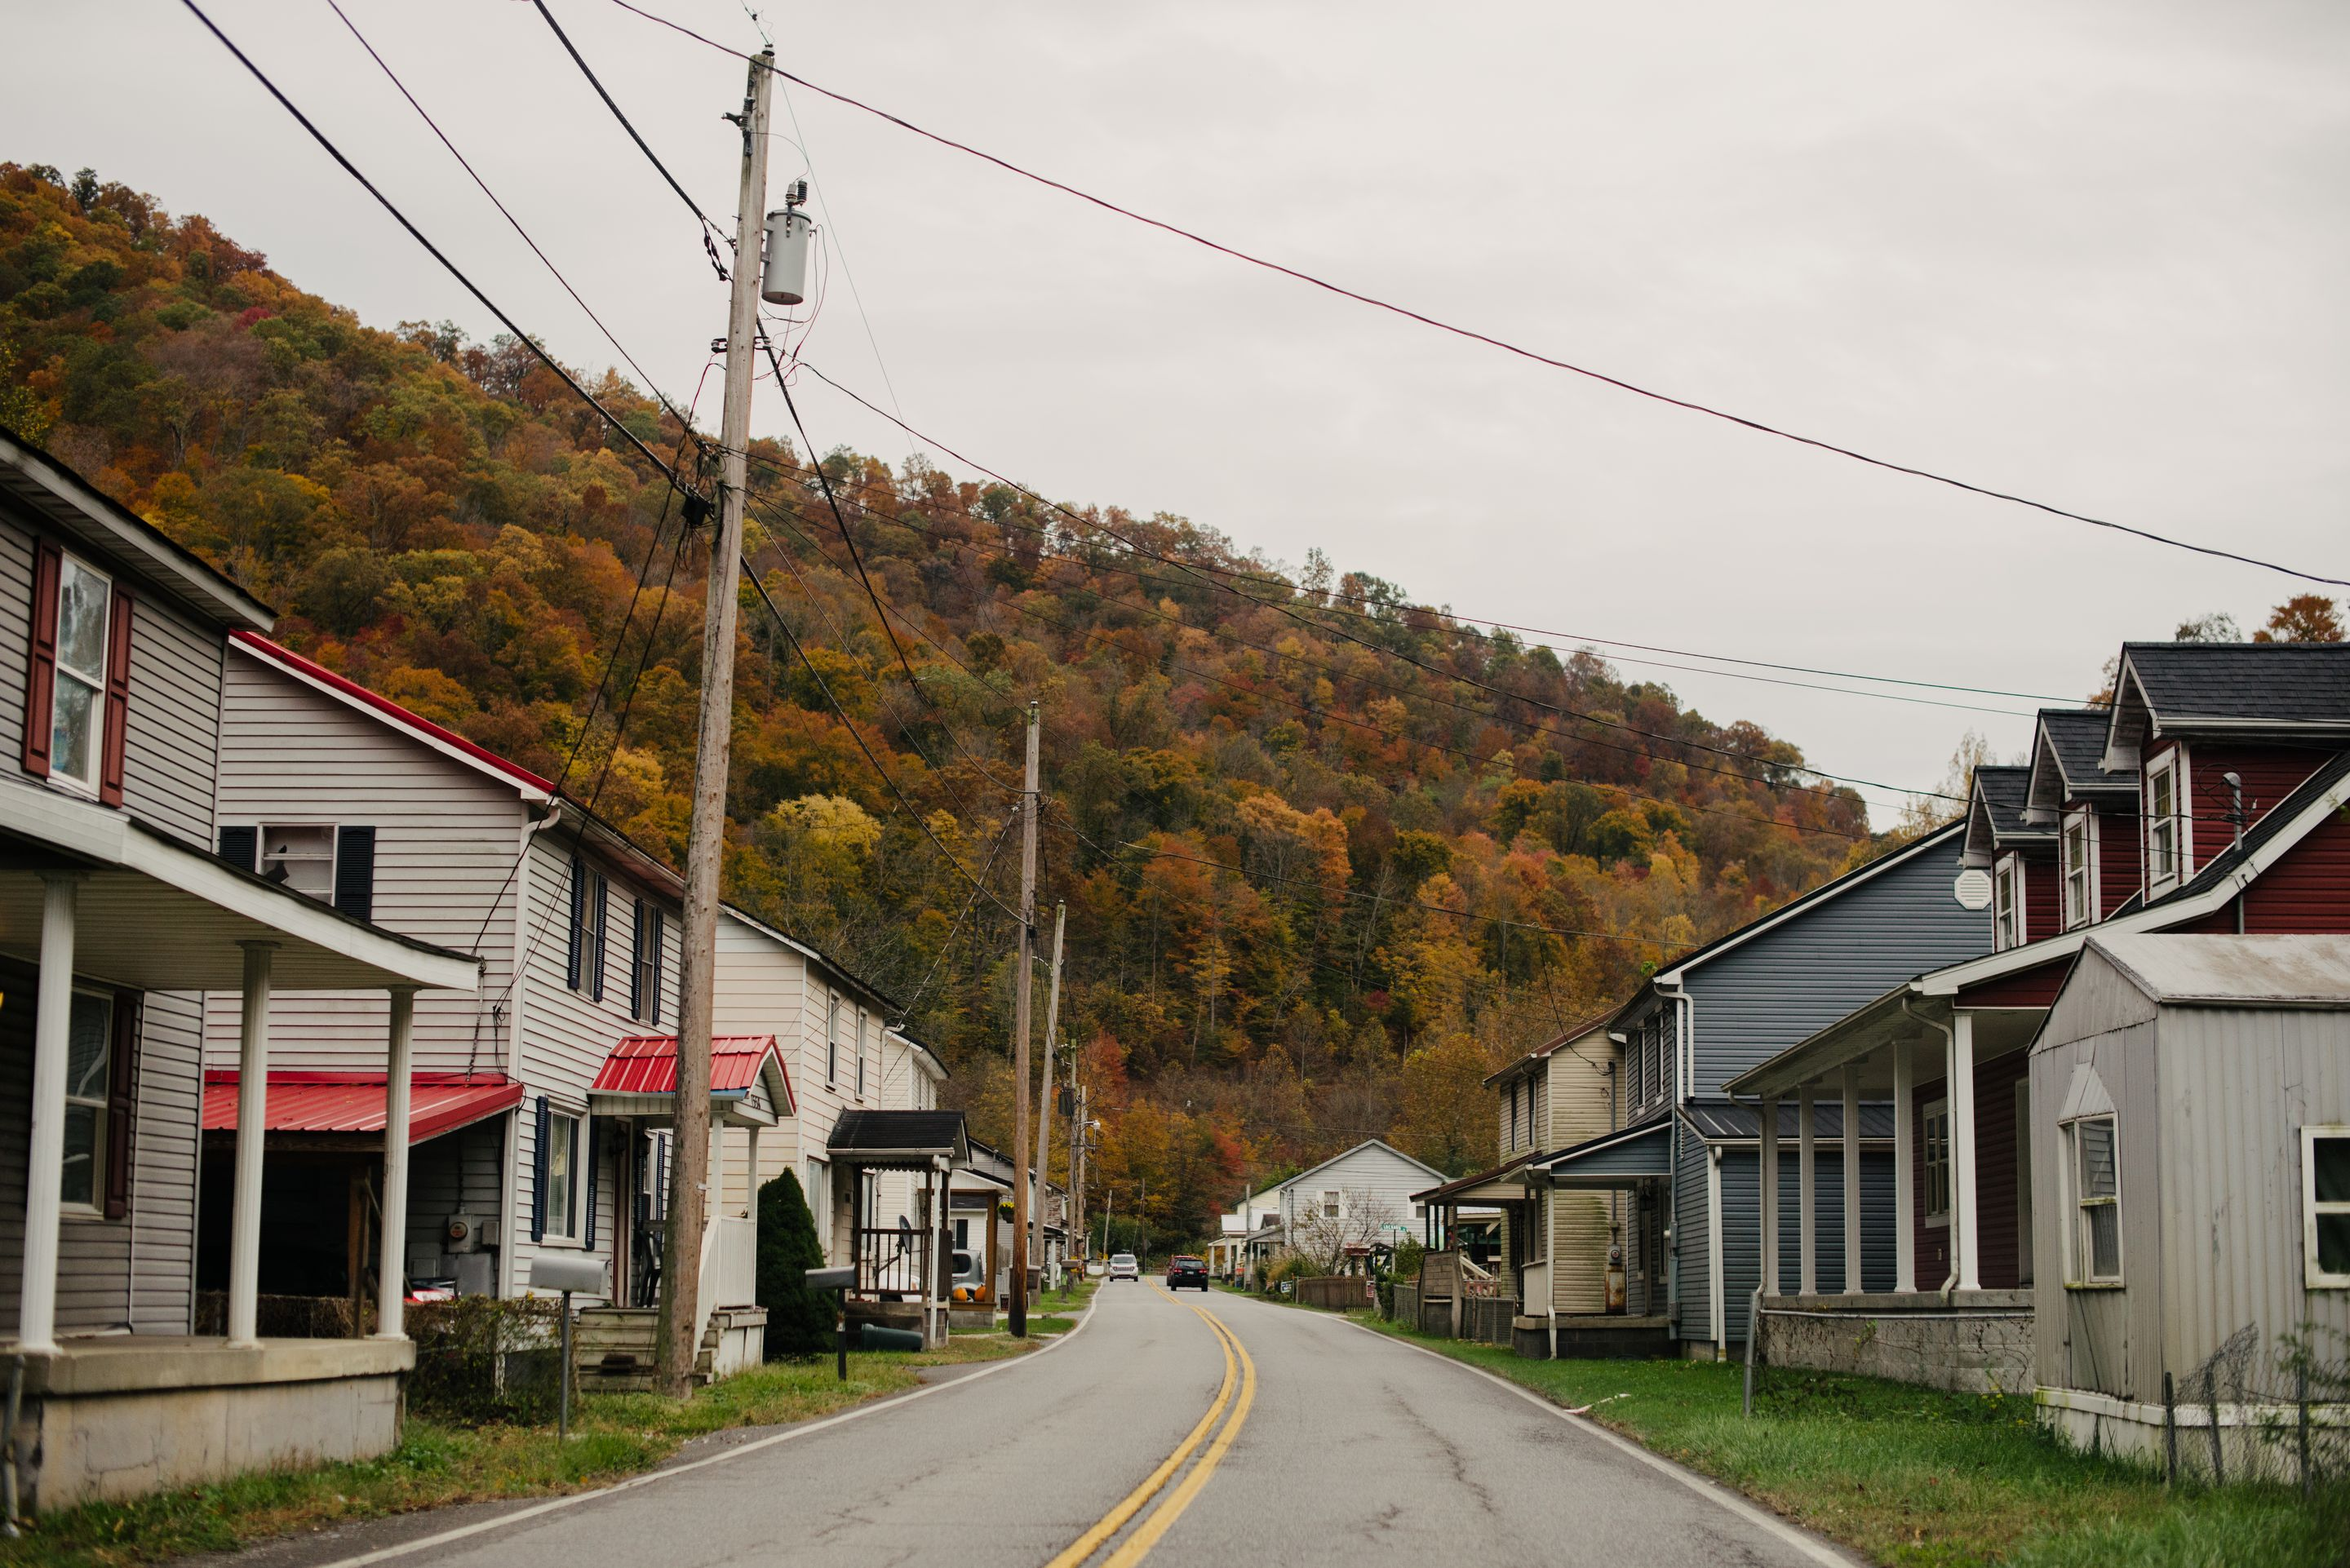 Toler, a small town north of Belfry on Route 119